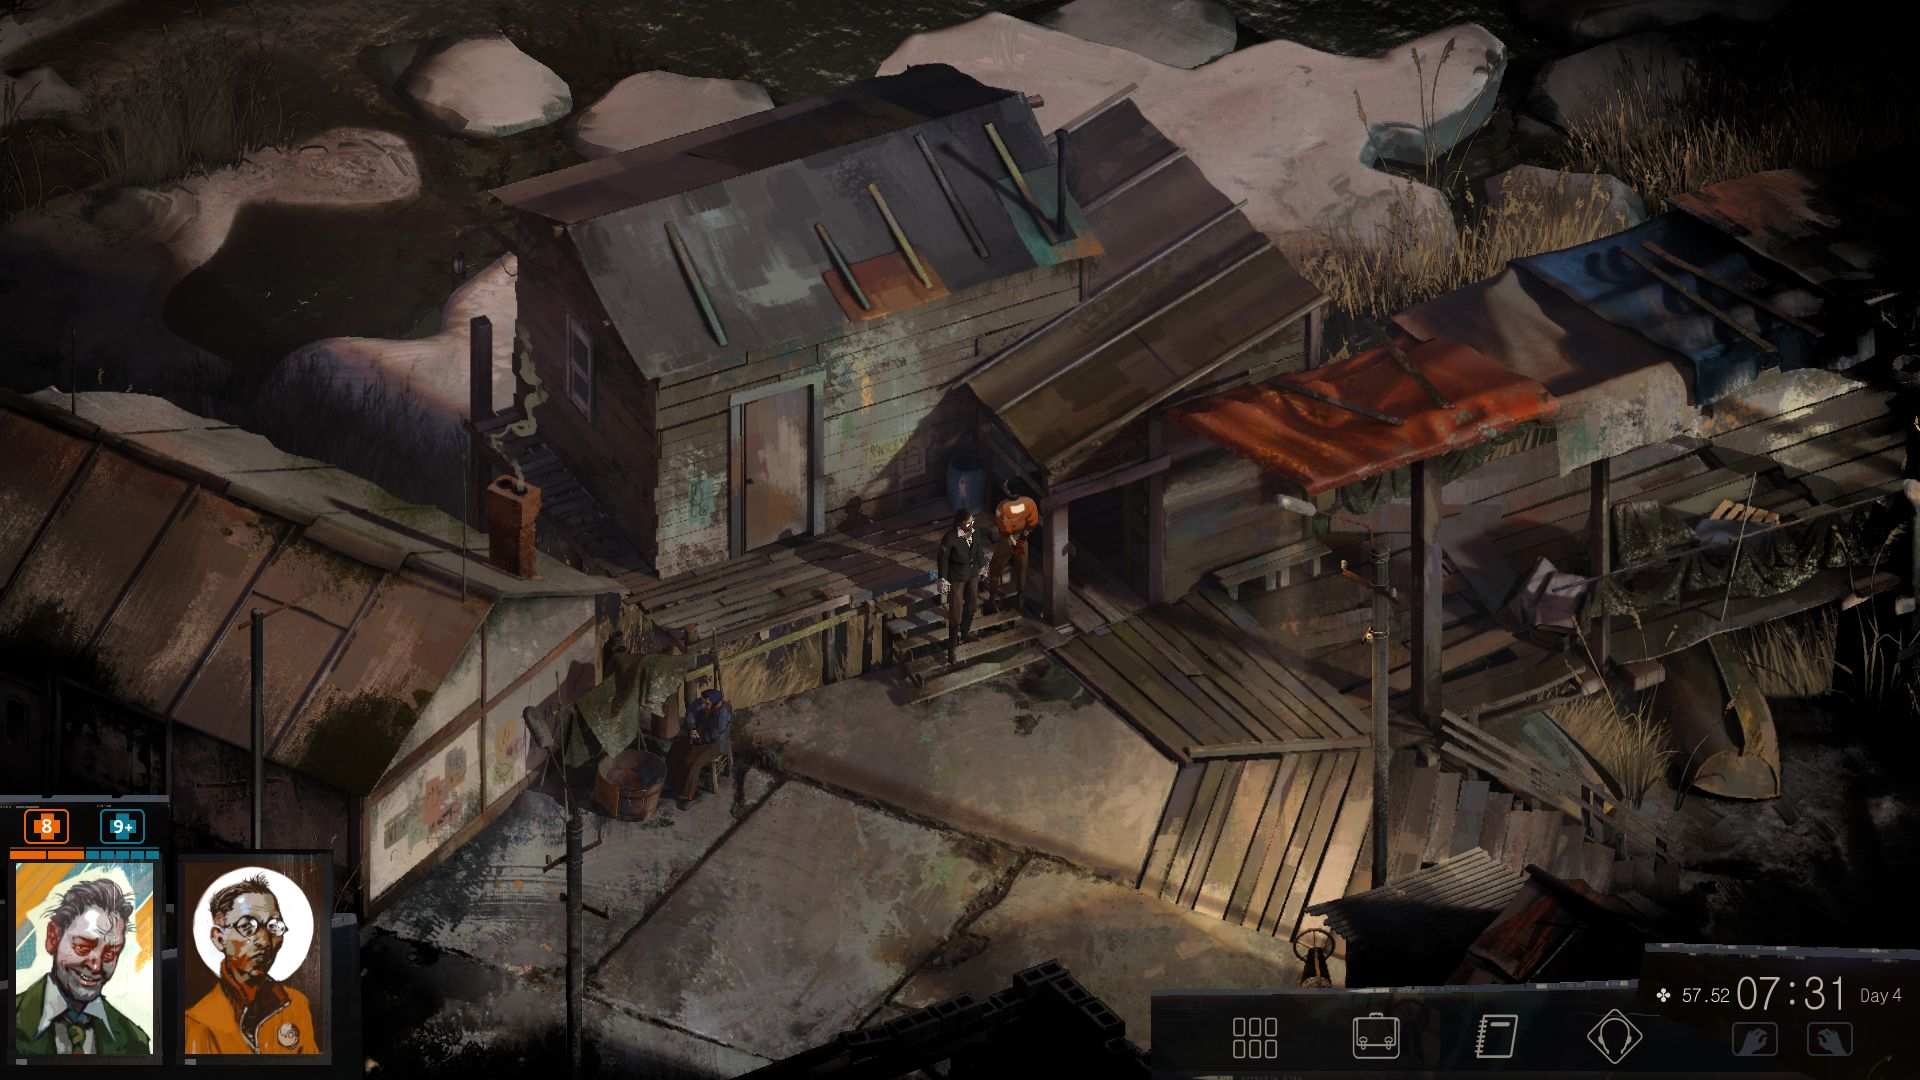 A screenshot of the singularly depressing beachside dwellings of Martinaise. They are rusting, rotting, and half falling down.